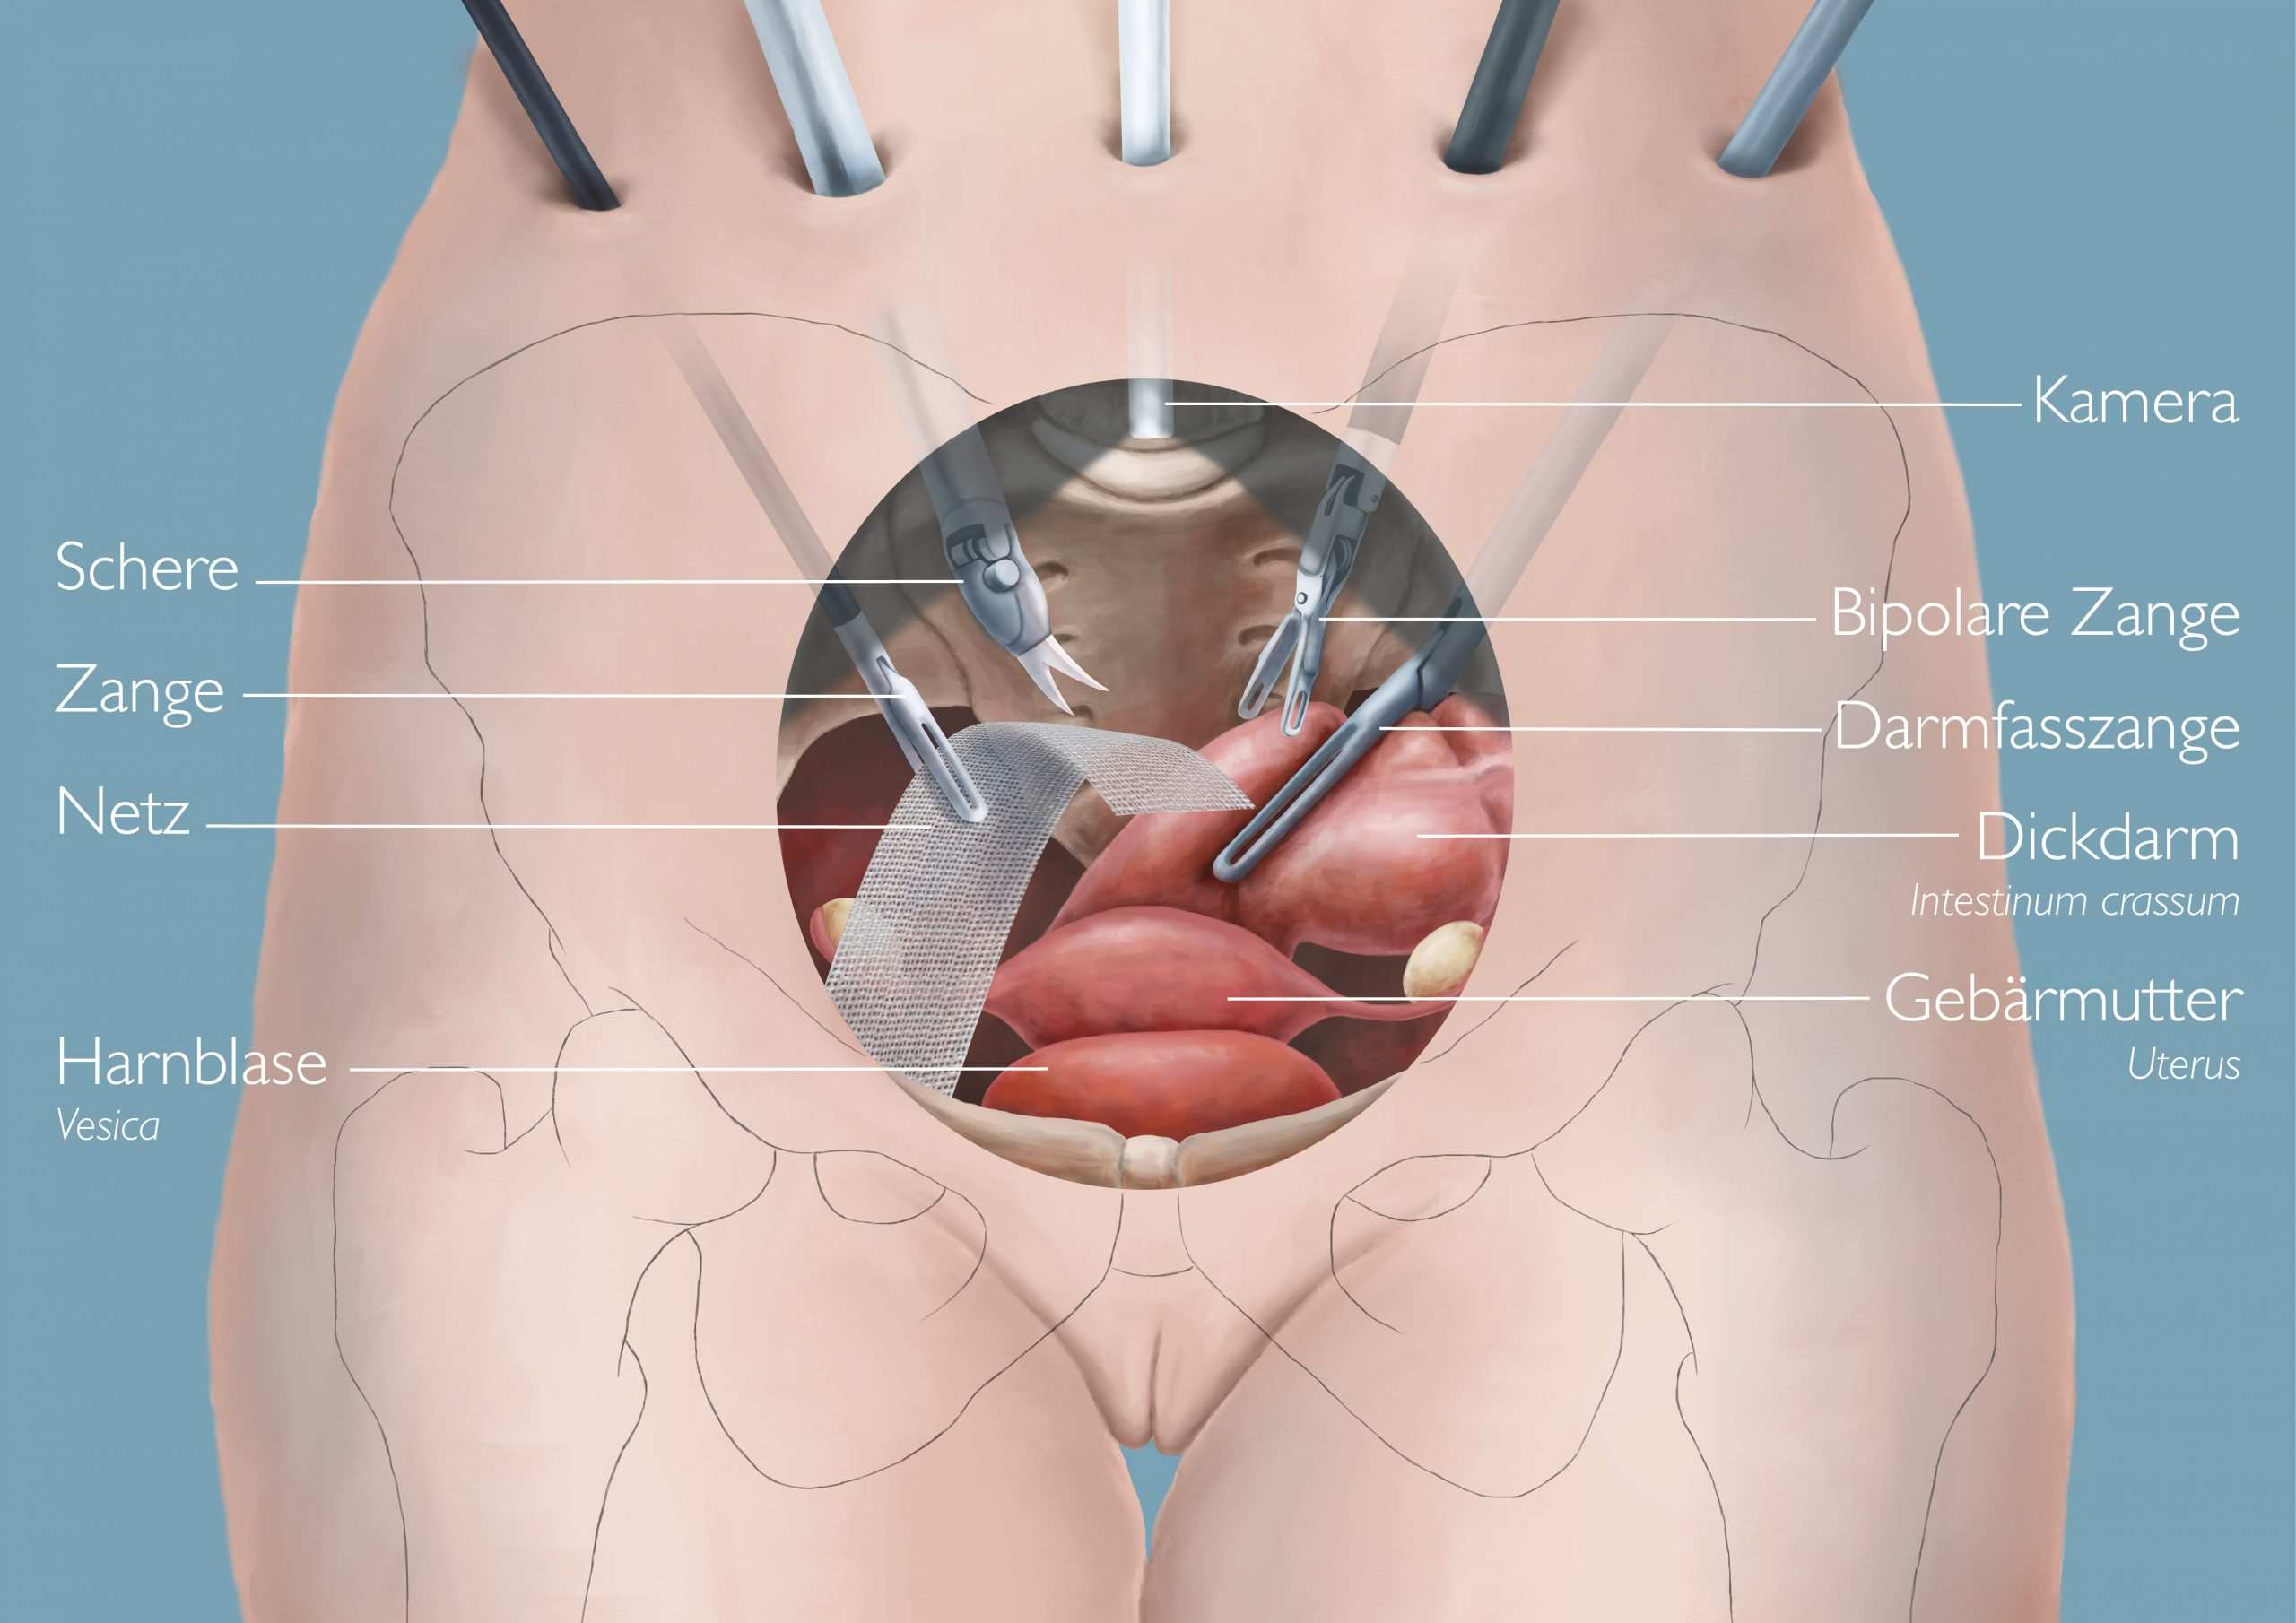 An illustration by Lisa Cuthbertson showing the instruments of a laparoscopy in relation to the body